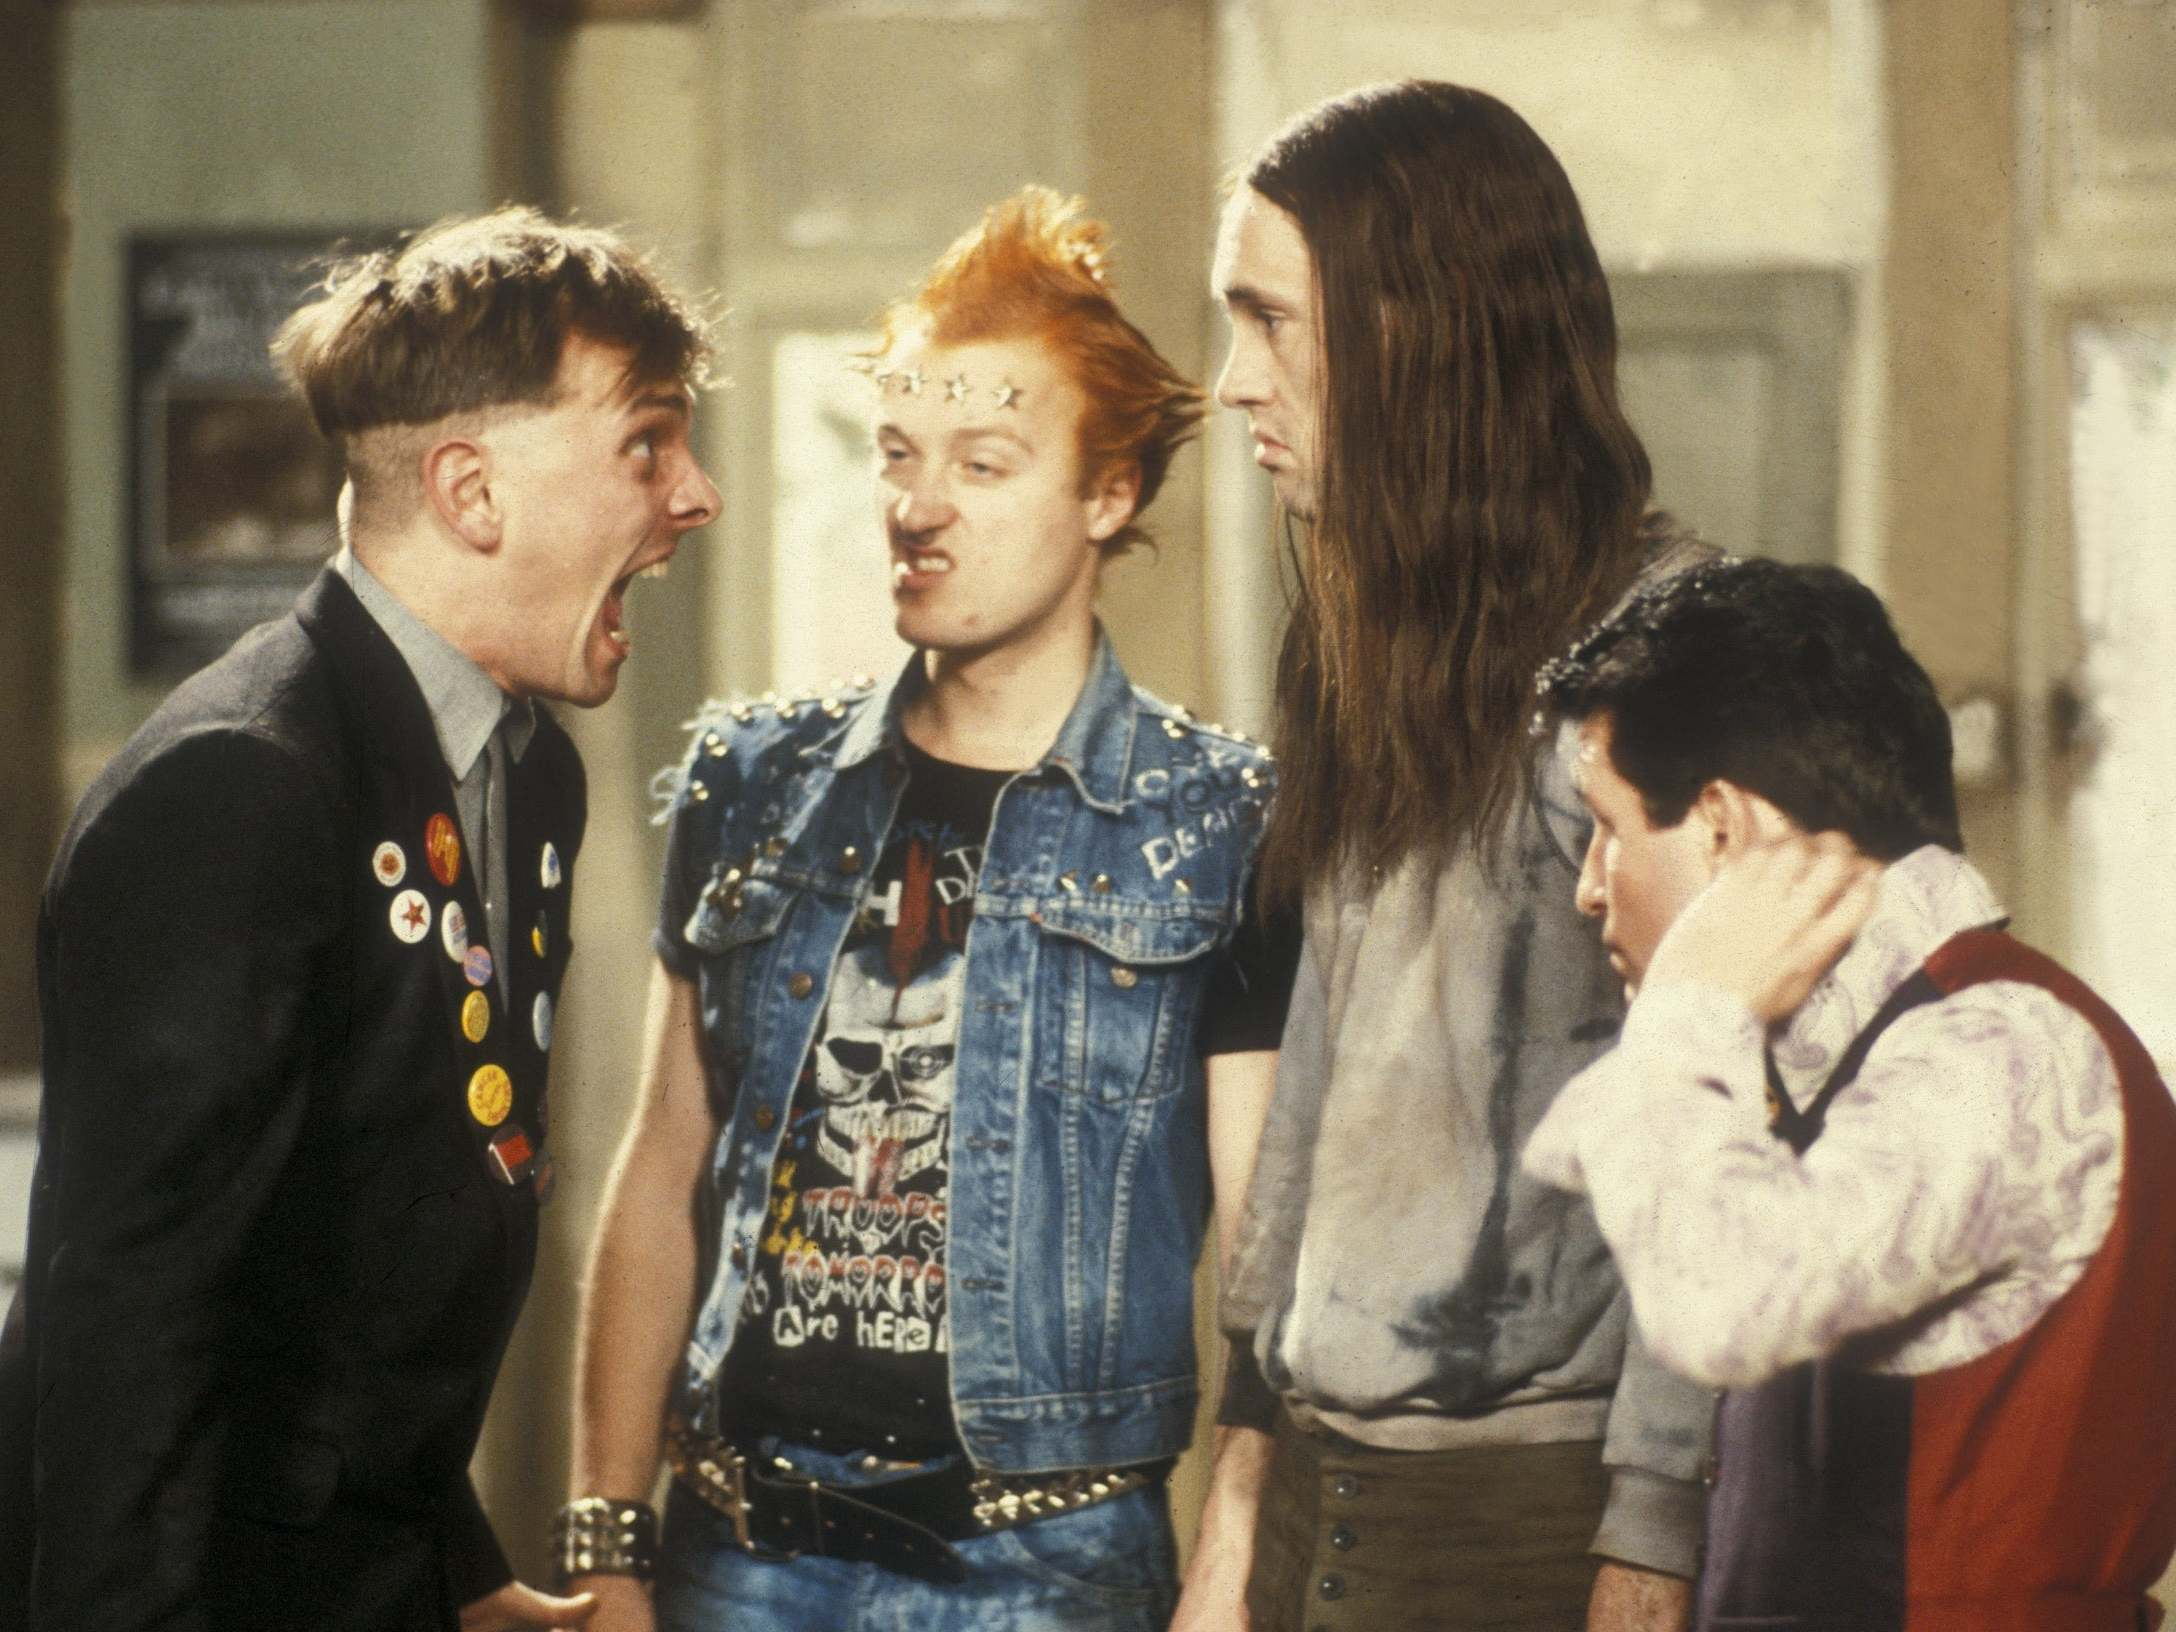 I thought using ableist slurs in 'The Young Ones' was ok 30 years ago – until I met the people I'd let down